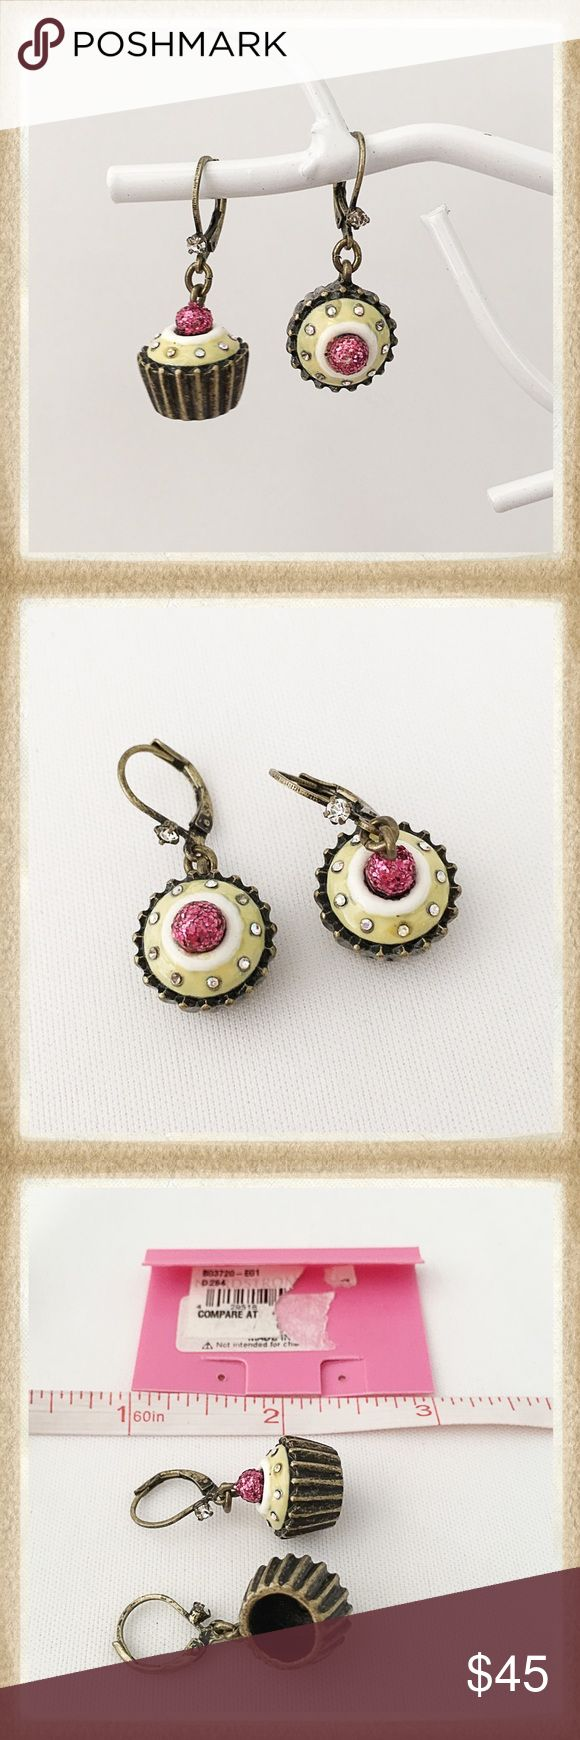 Betsey Johnson 'betsey Goes To Paris' Htf Earrings From An Older, Retired  Collection